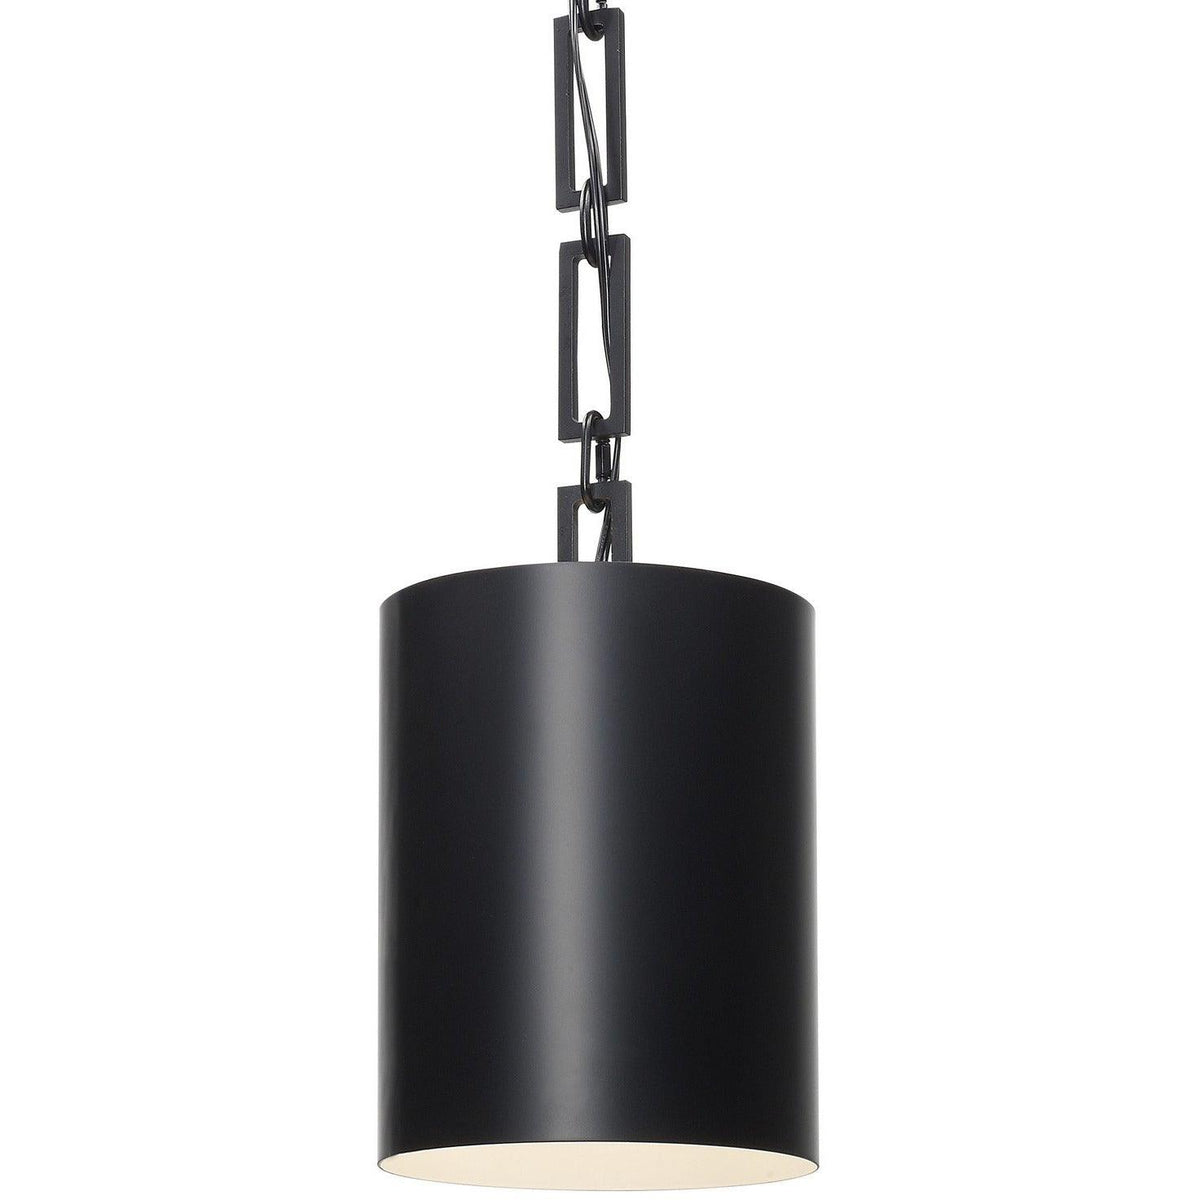 Crystorama - 8680-MK-WH - One Light Mini Chandelier - Alston - Matte Black / White